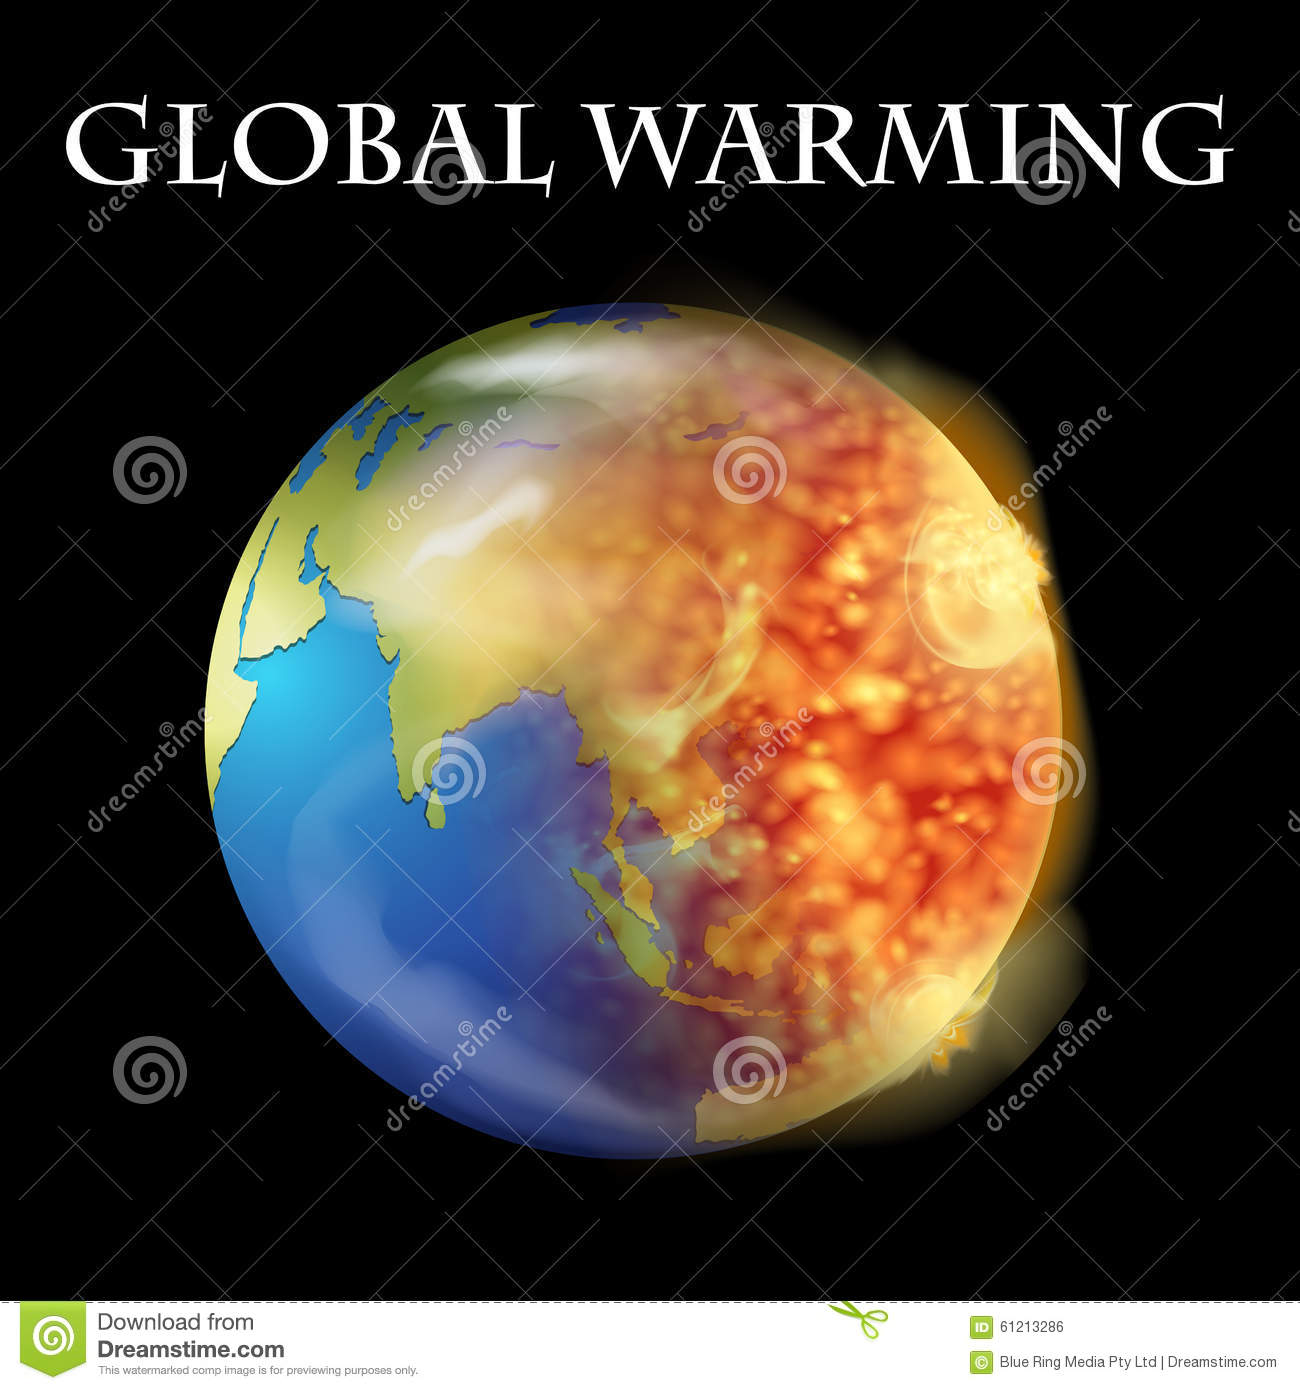 Global Warming Theme With Earth On Fire Stock Vector ...